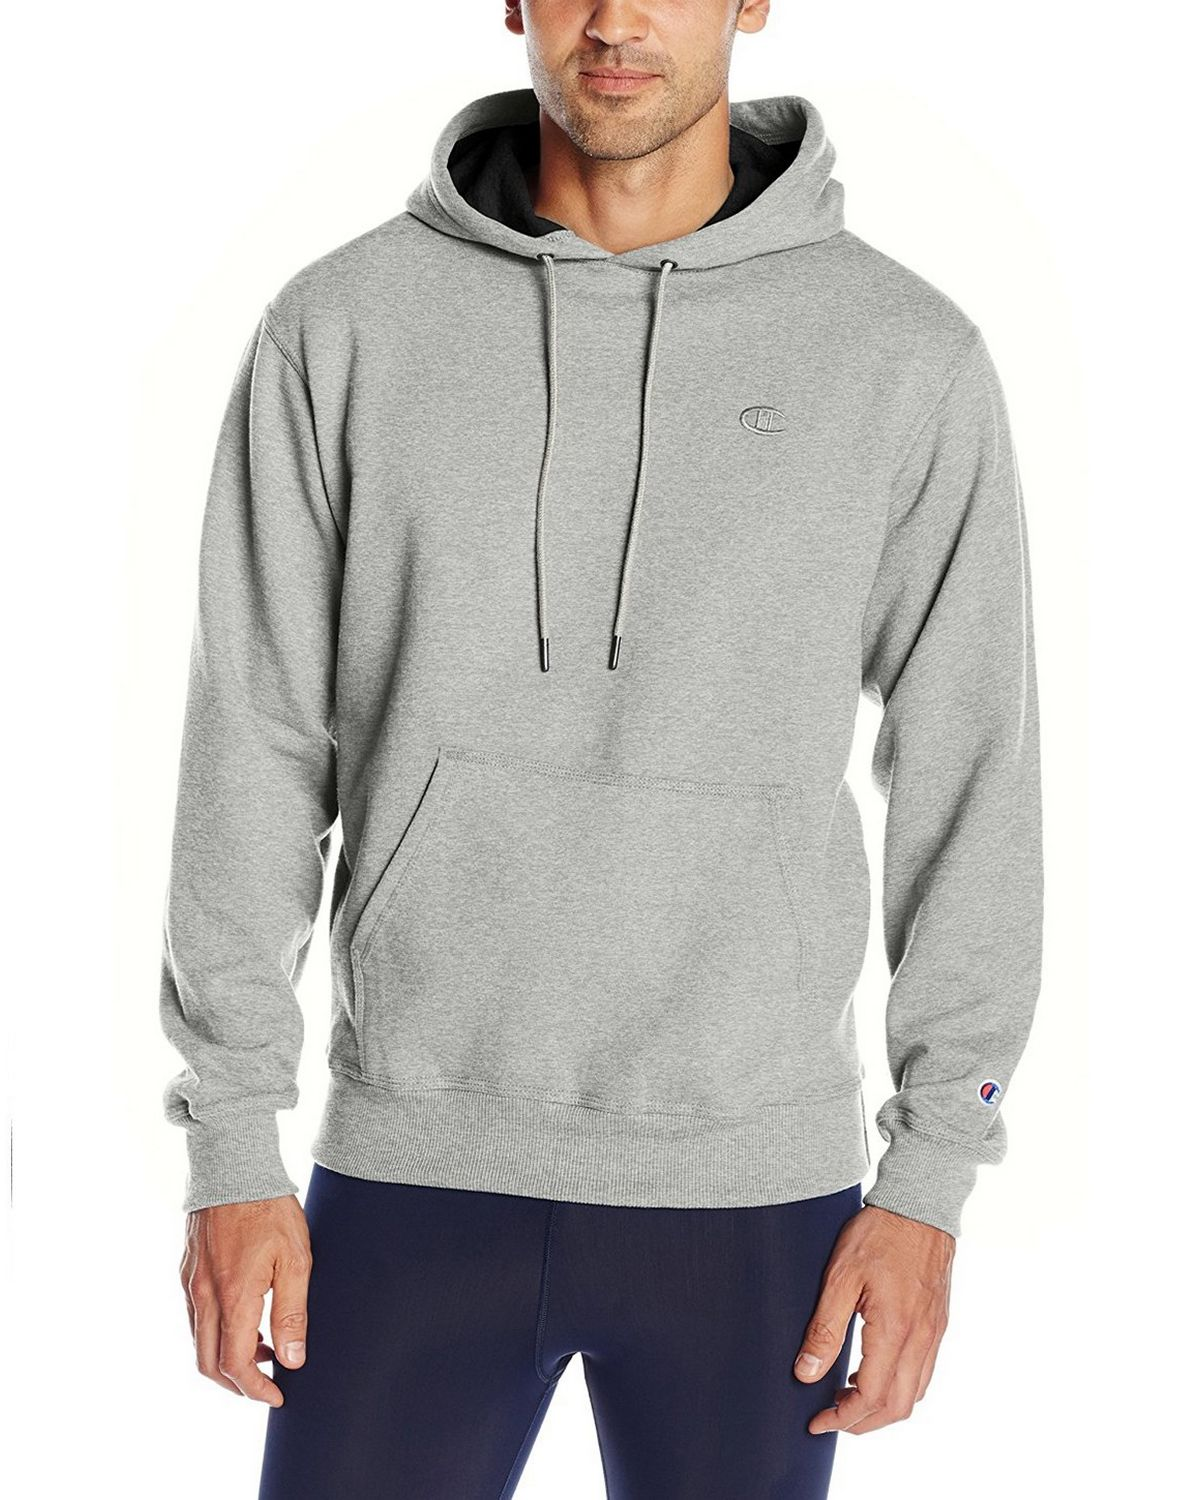 Champion S0889 Mens Fleece Pullover Hoodie - Oxford Grey - M S0889